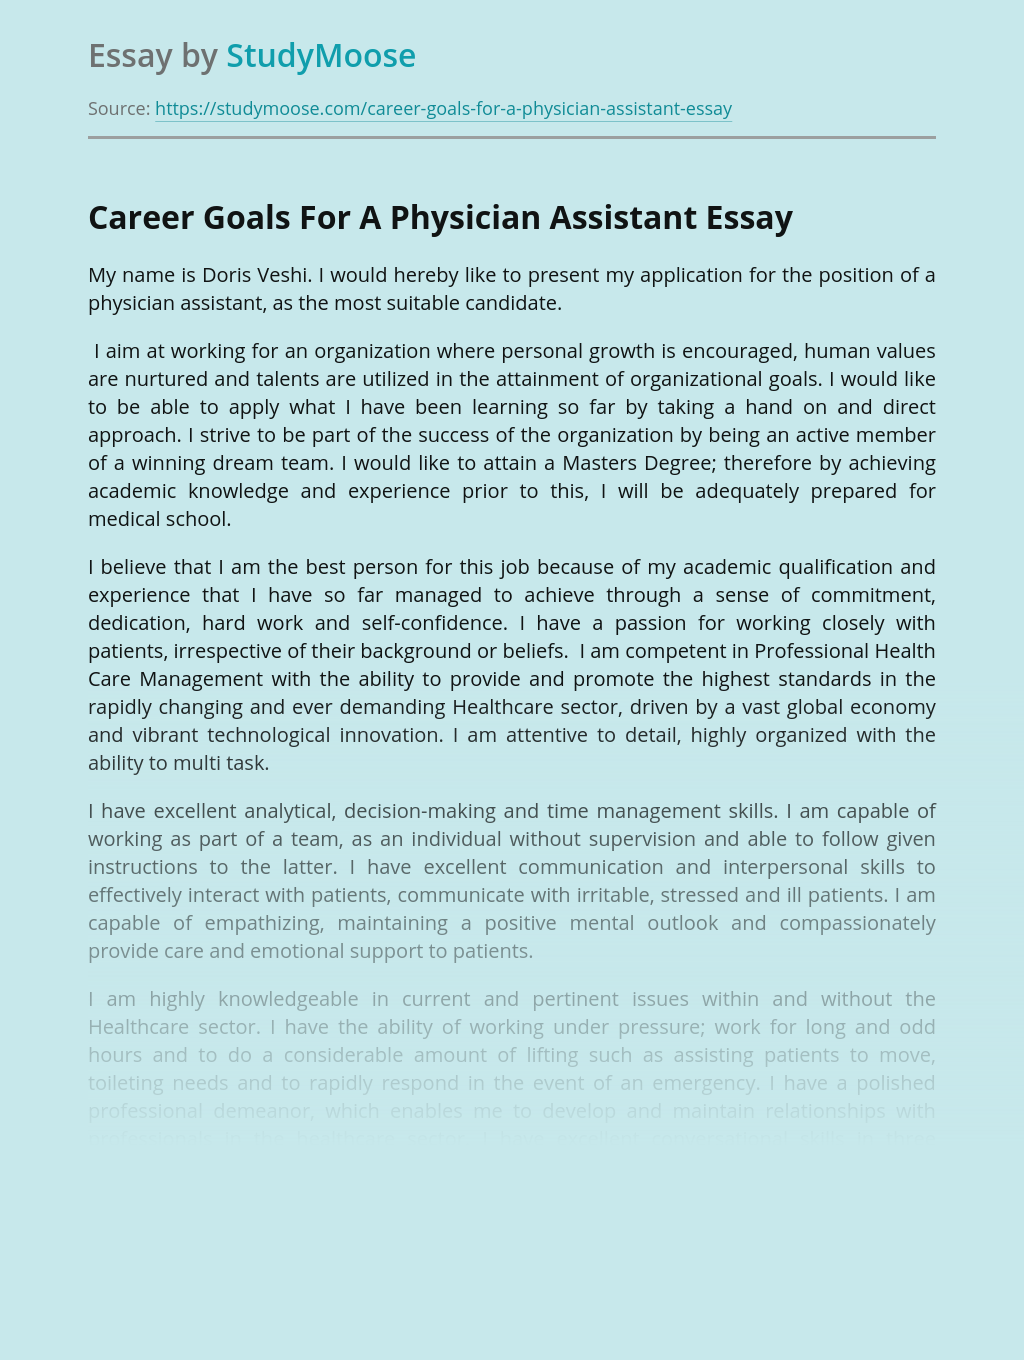 Career Goals For A Physician Assistant